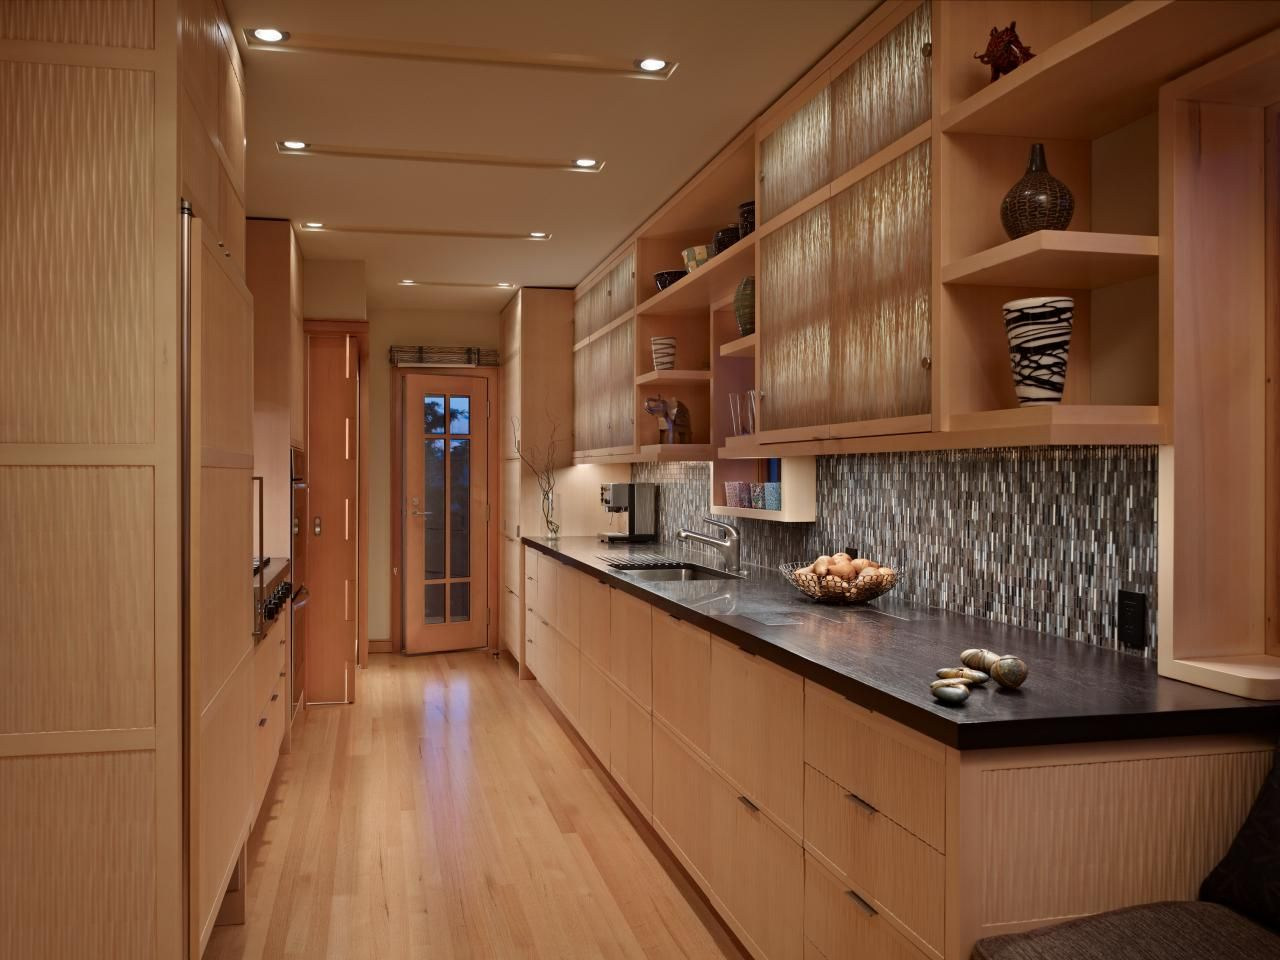 Alaskan Yellow Cedar Cabinets Pair With Limestone And Black Walnut Extraordinary Wood Cabinet Kitchen Design Inspiration